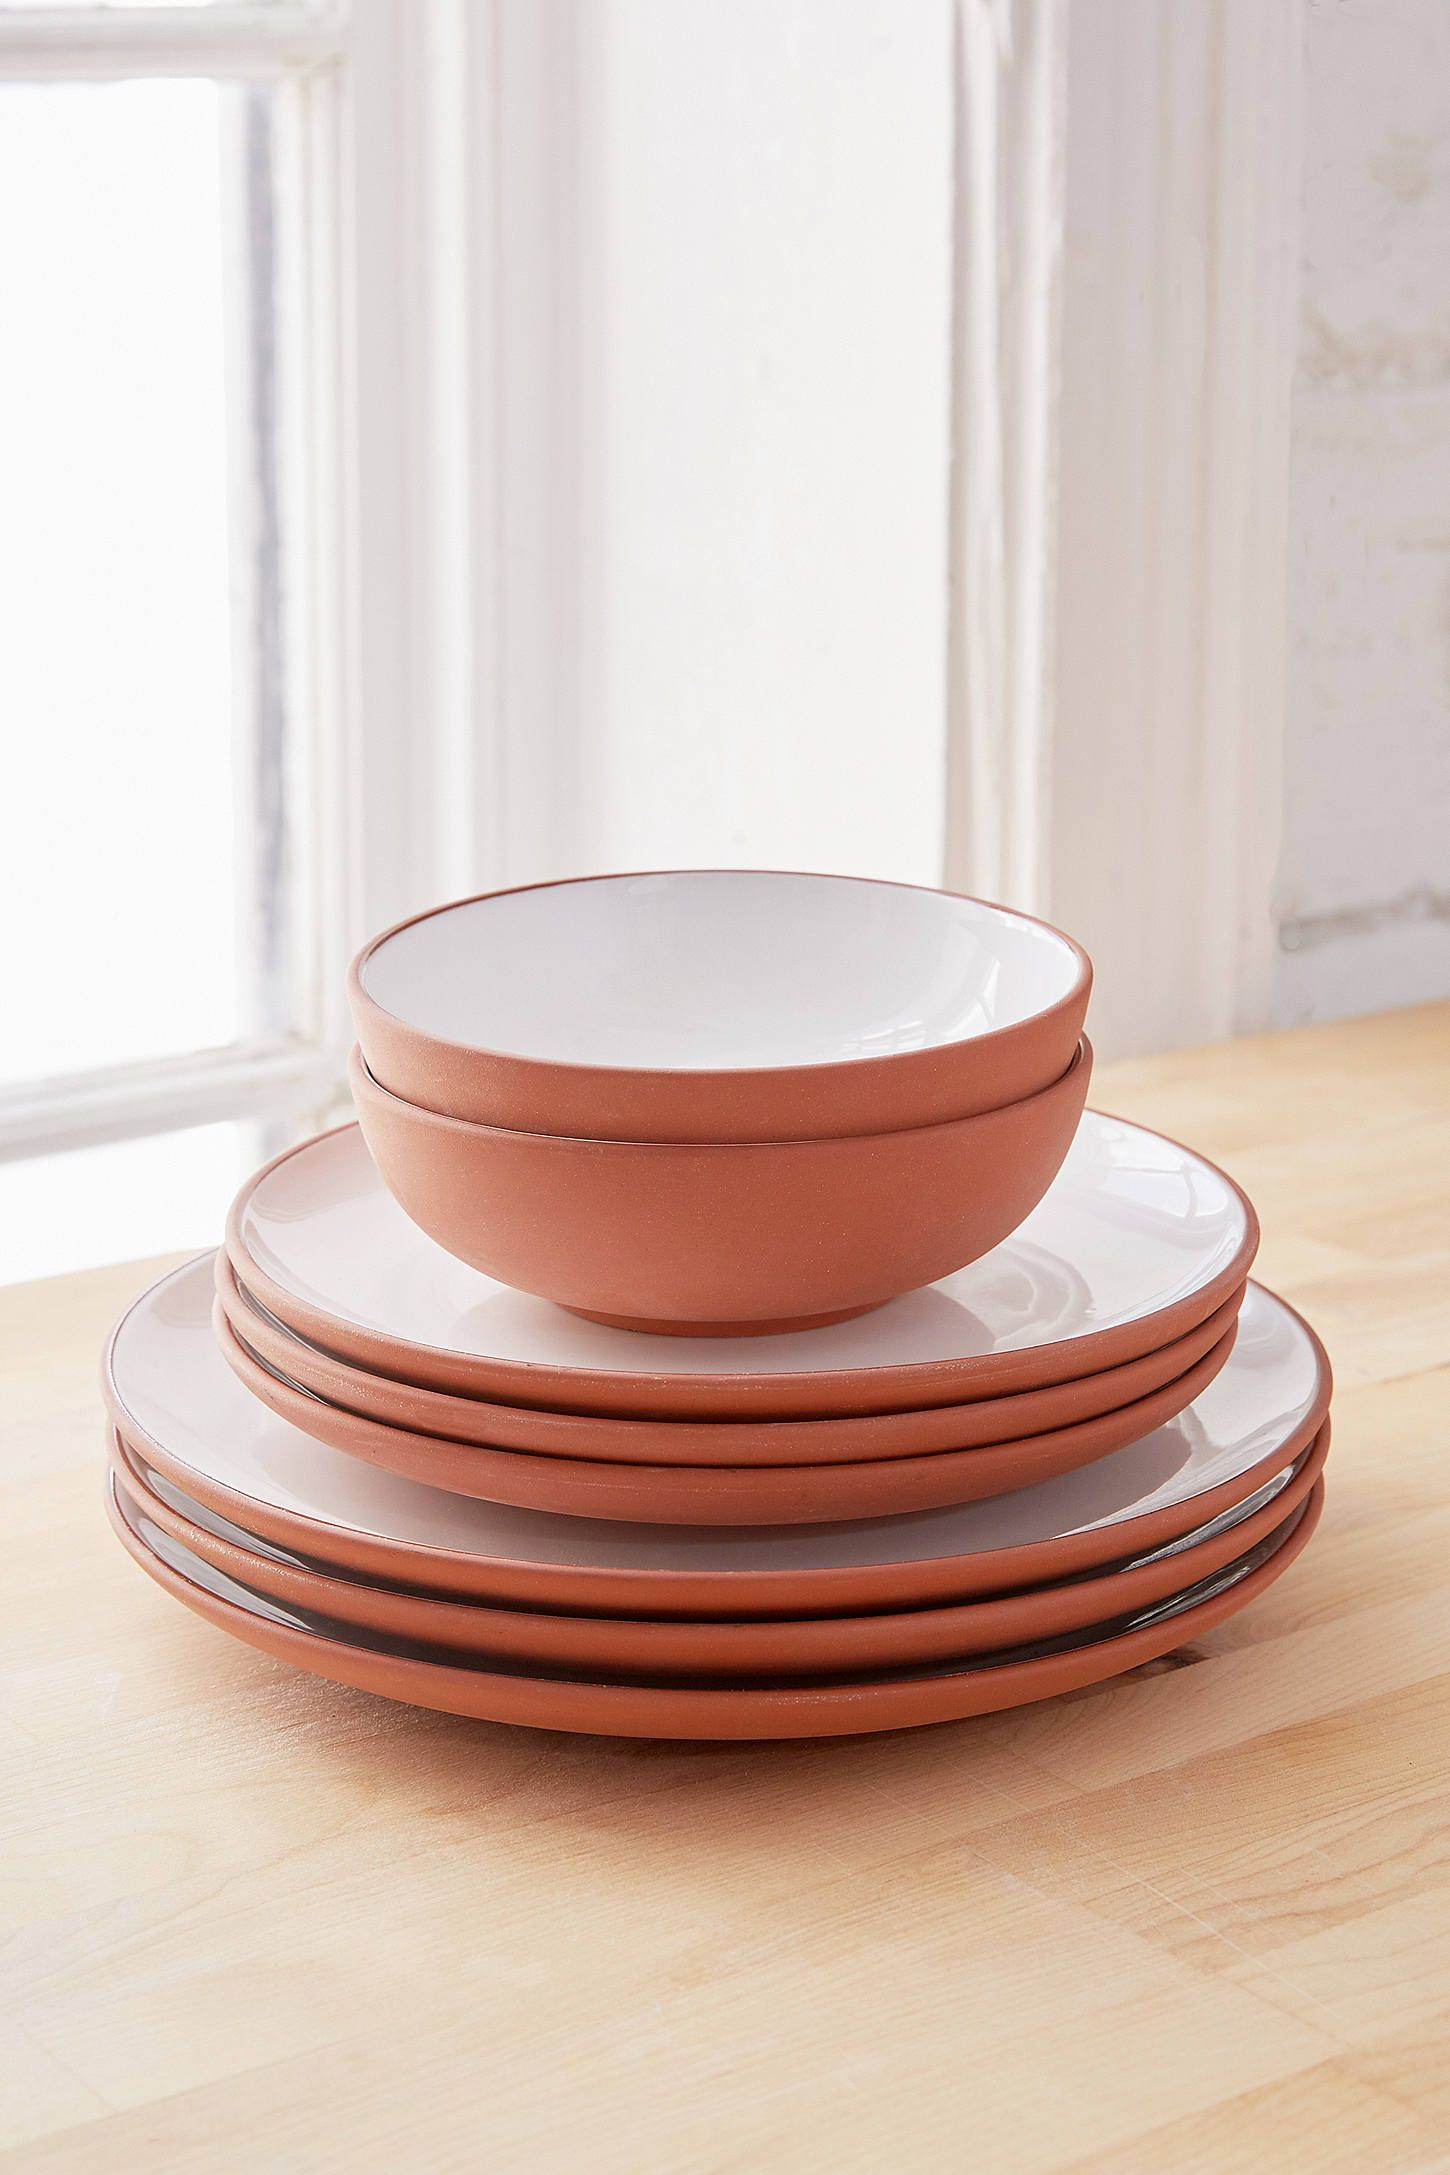 Shop 12-Piece Terracotta Dinnerware Set at Urban Outfitters today. We carry all the latest styles colors and brands for you to choose from right here. & 12-Piece Terracotta Dinnerware Set | Terracotta Dinnerware and ...